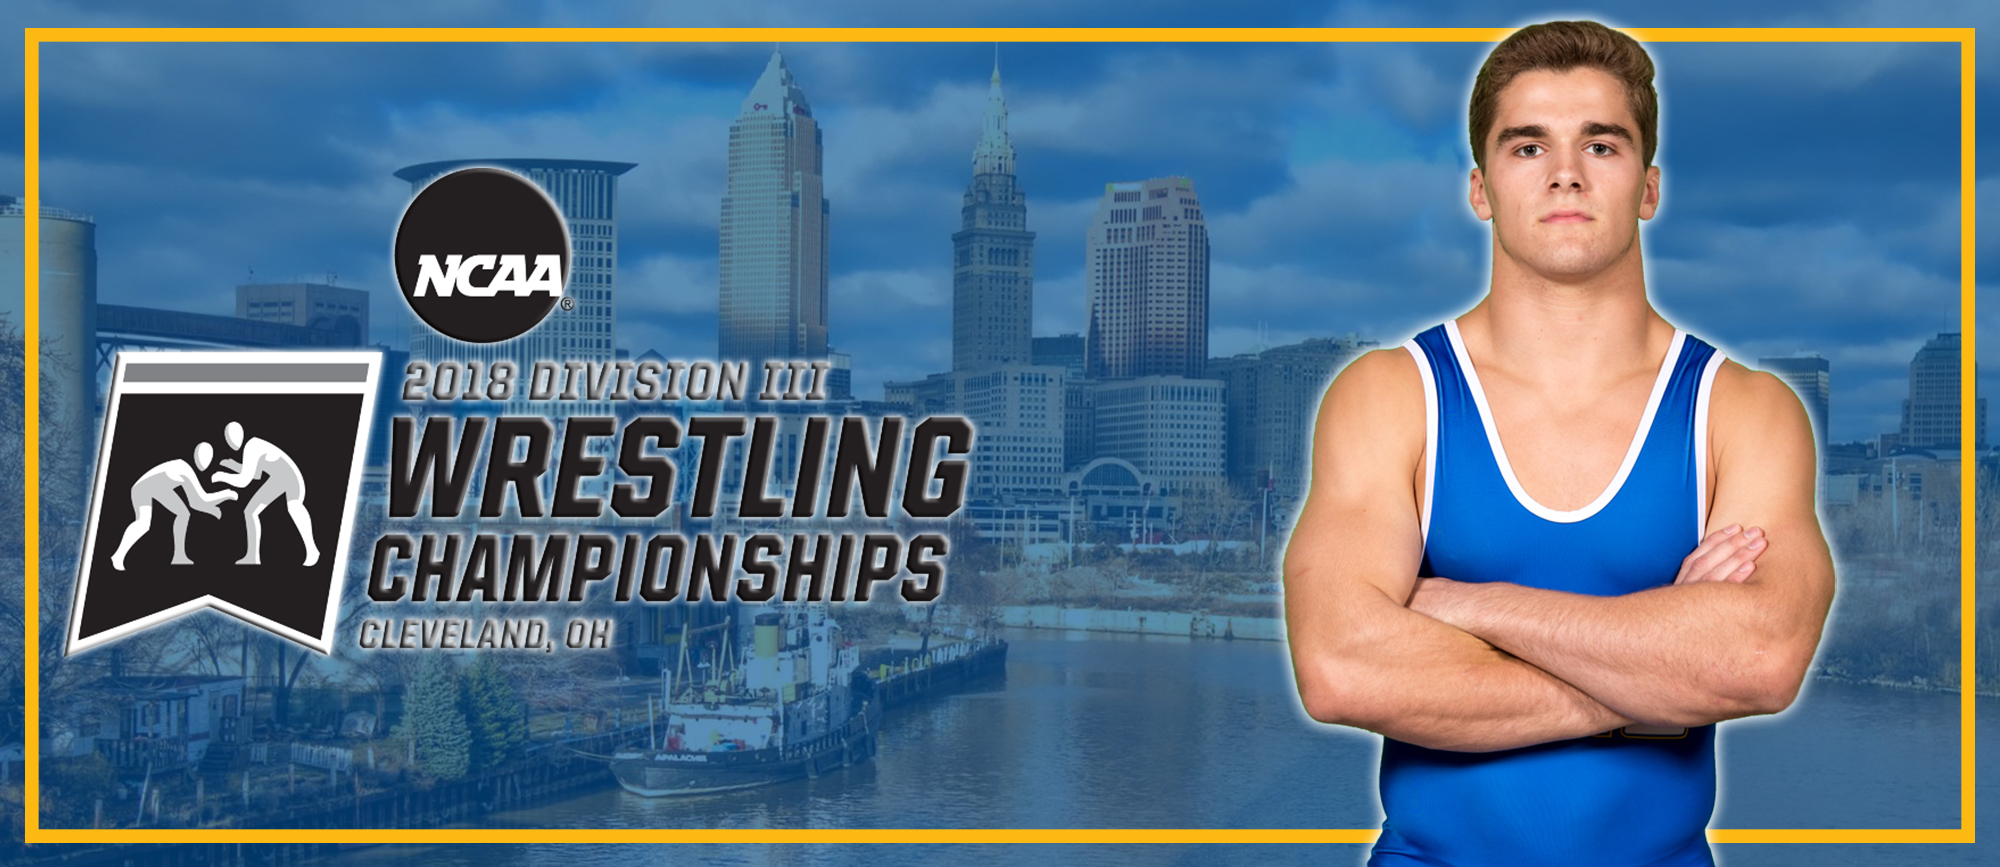 John Boyle to Represent Golden Bears at NCAA Division III Wrestling Championships